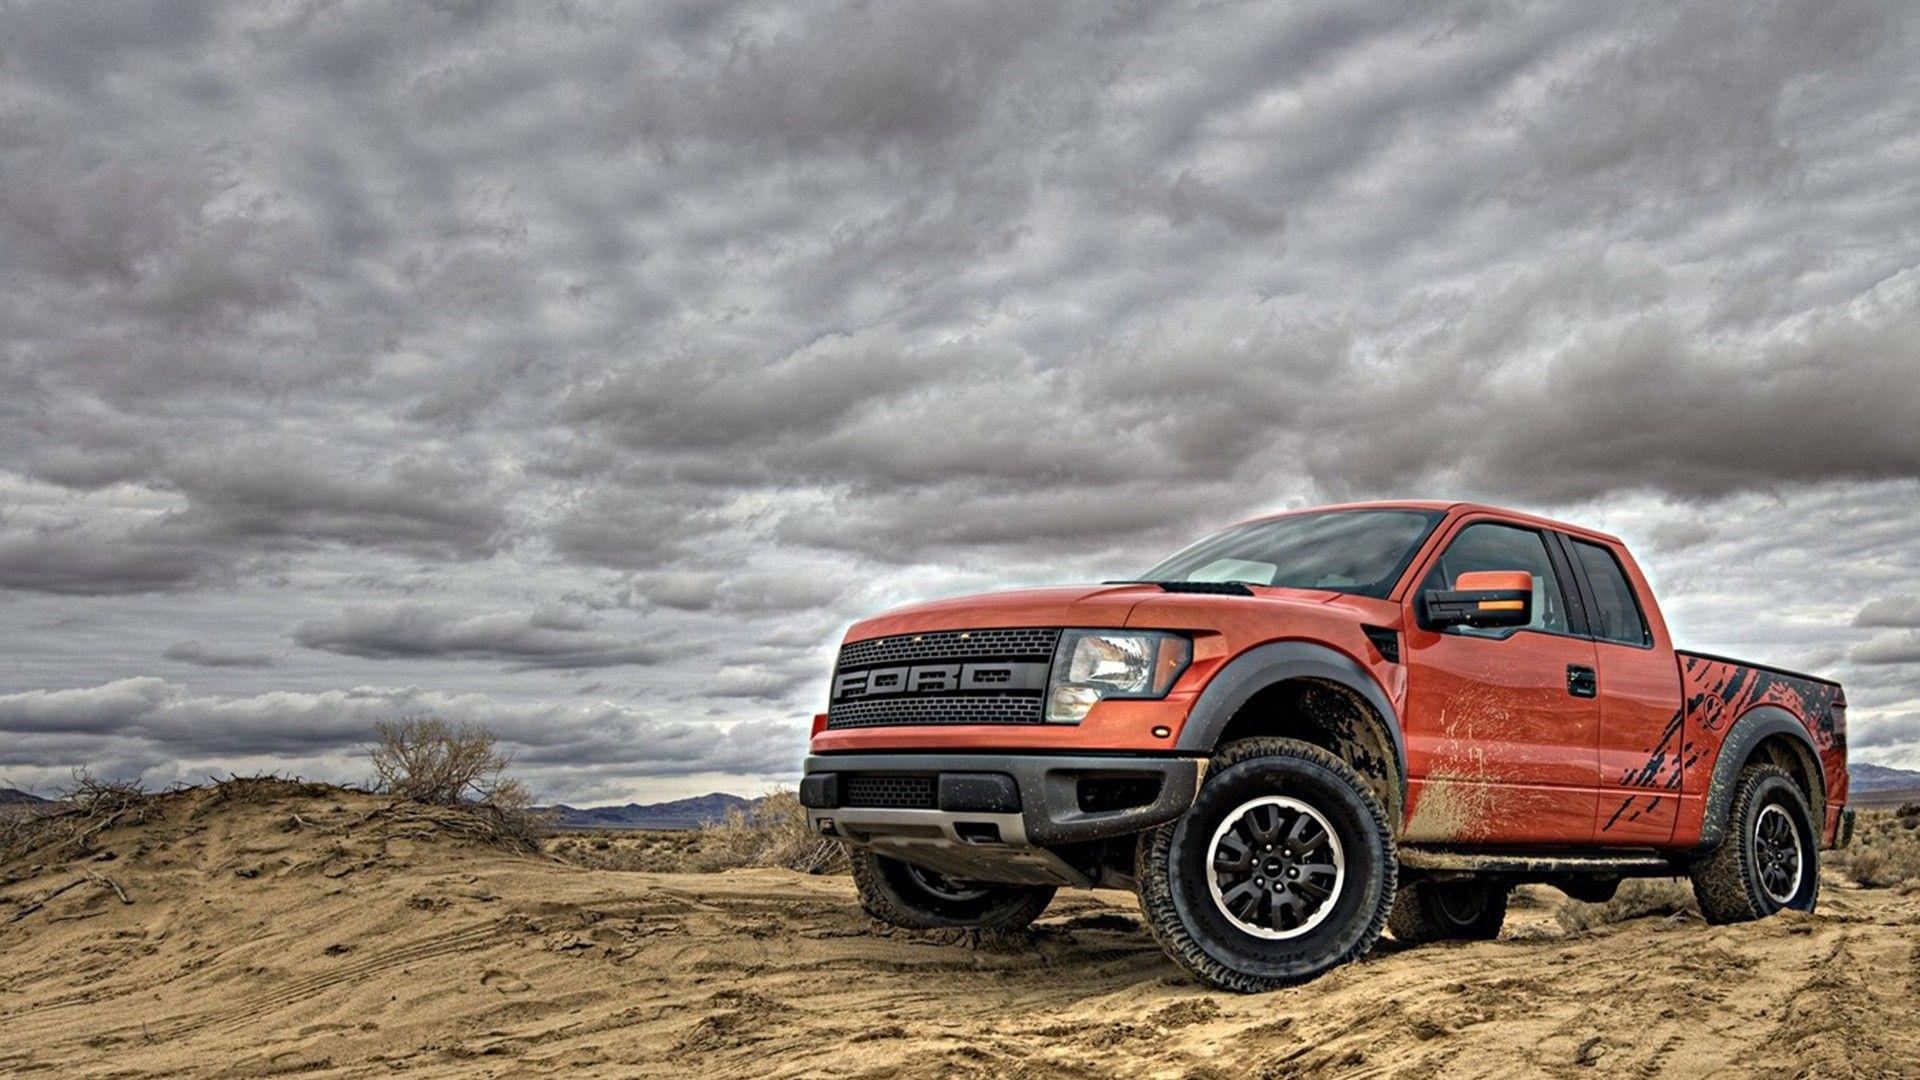 wallpaper ford raptor - photo #4